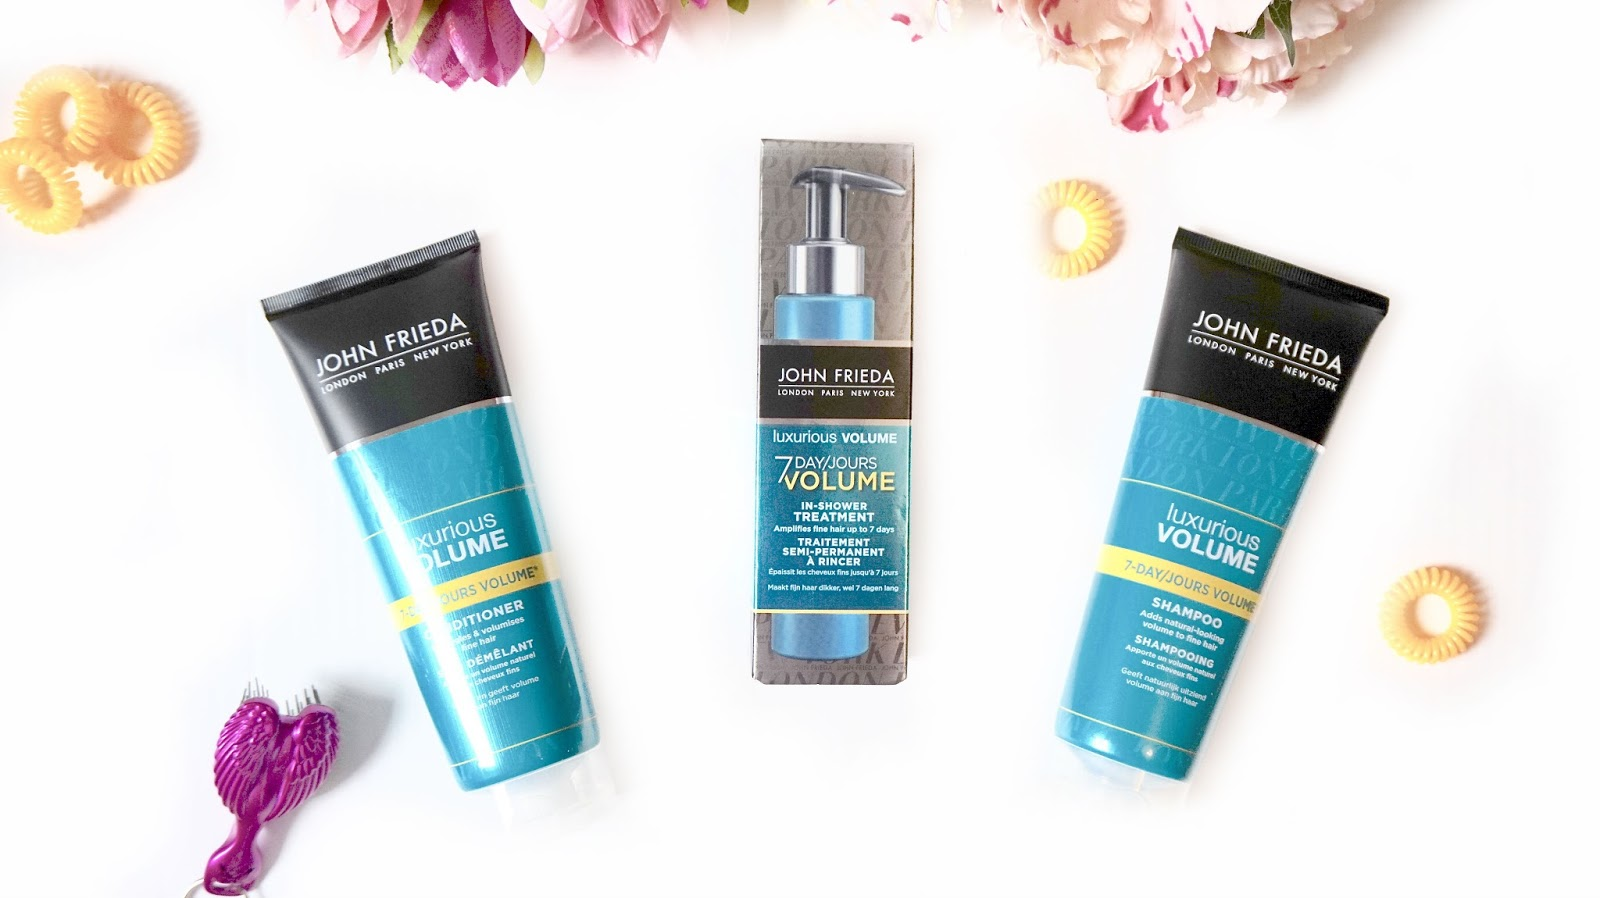 John Frieda Luxurious Volume Range